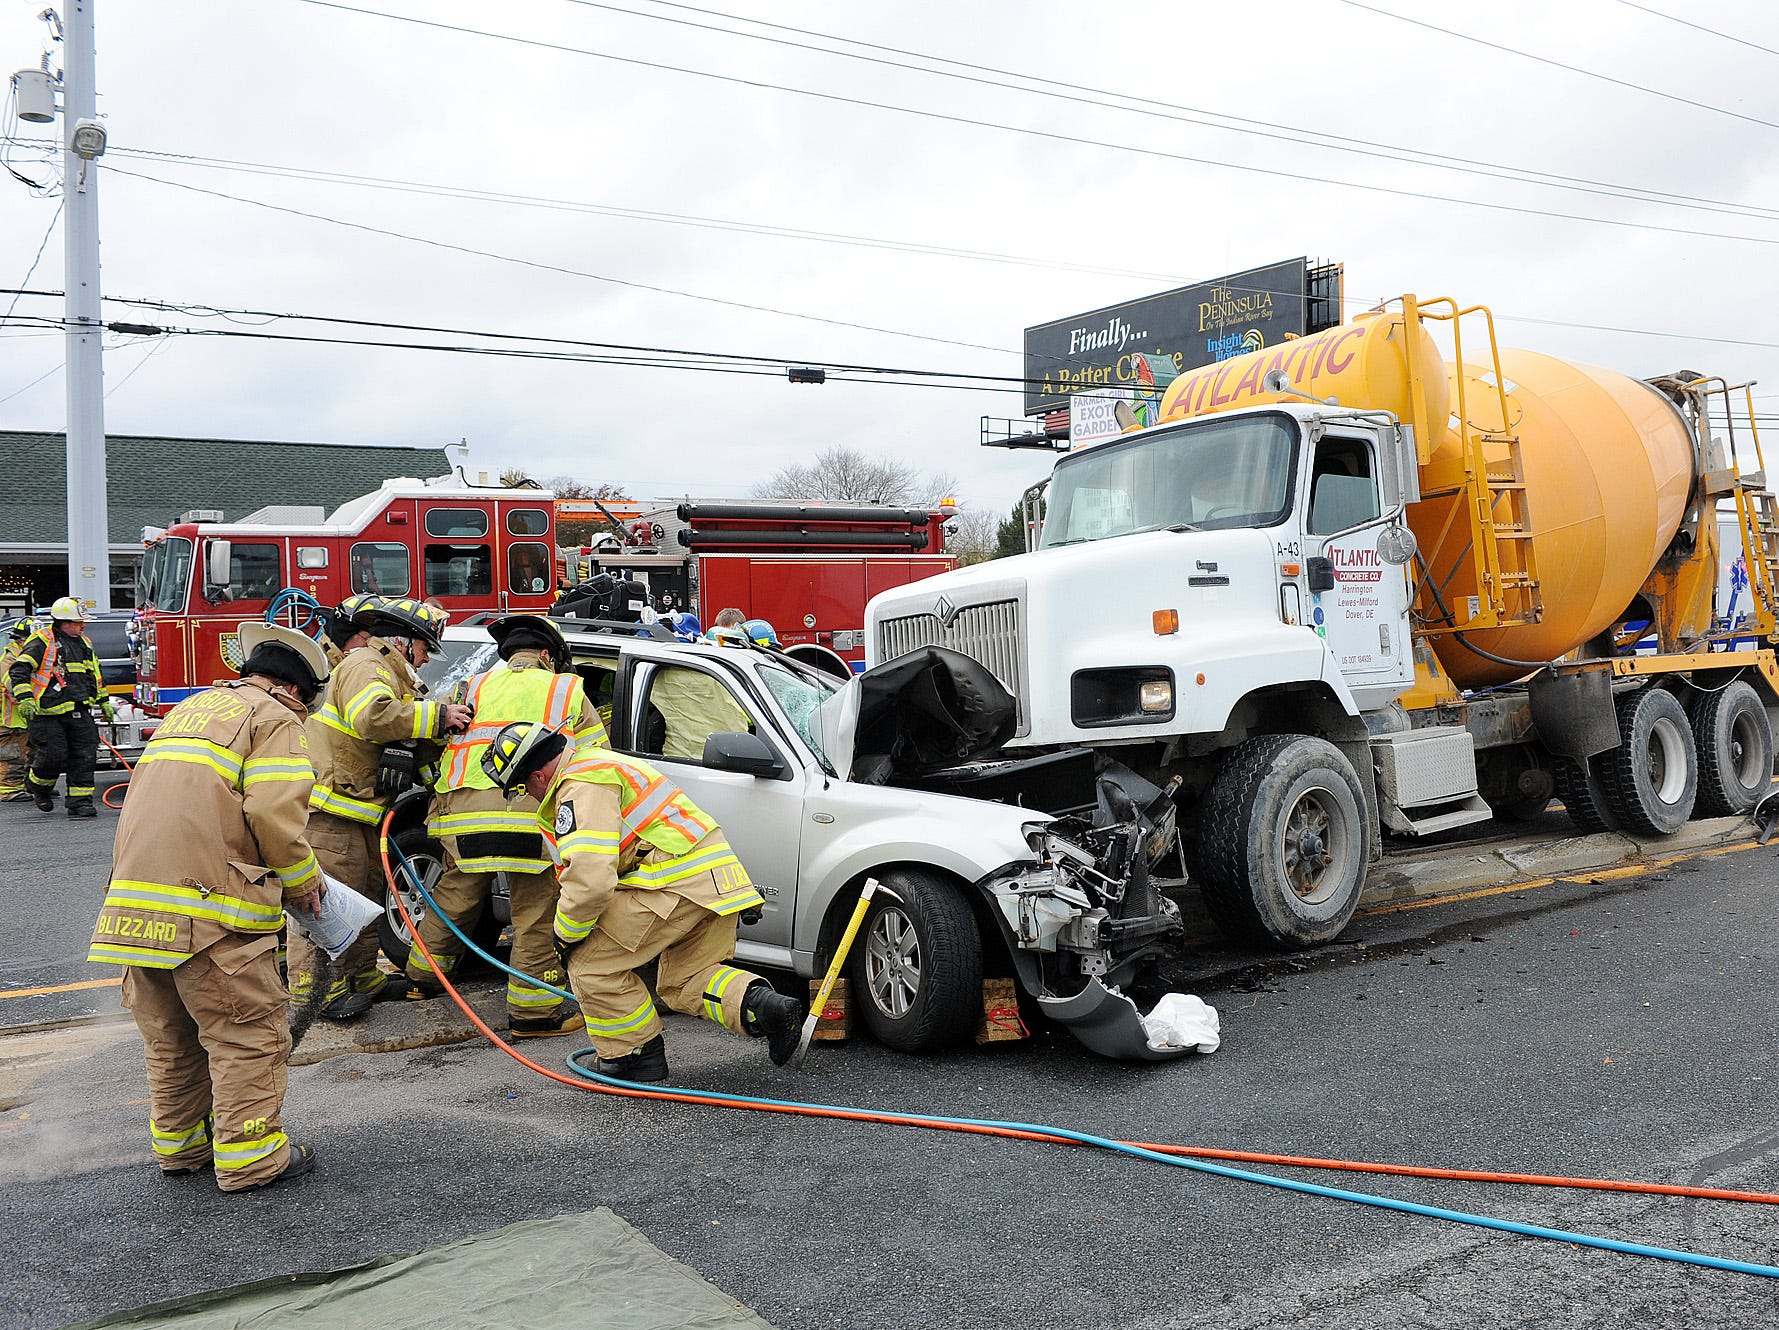 A serious vehicle accident on Coastal Highway south of Rt. 24 north of Rehoboth Beach between a Cement Truck and a SUV resulted in 2 patients being transported to Beebe Medical Center in Lewes at 9:44 am Friday morning.